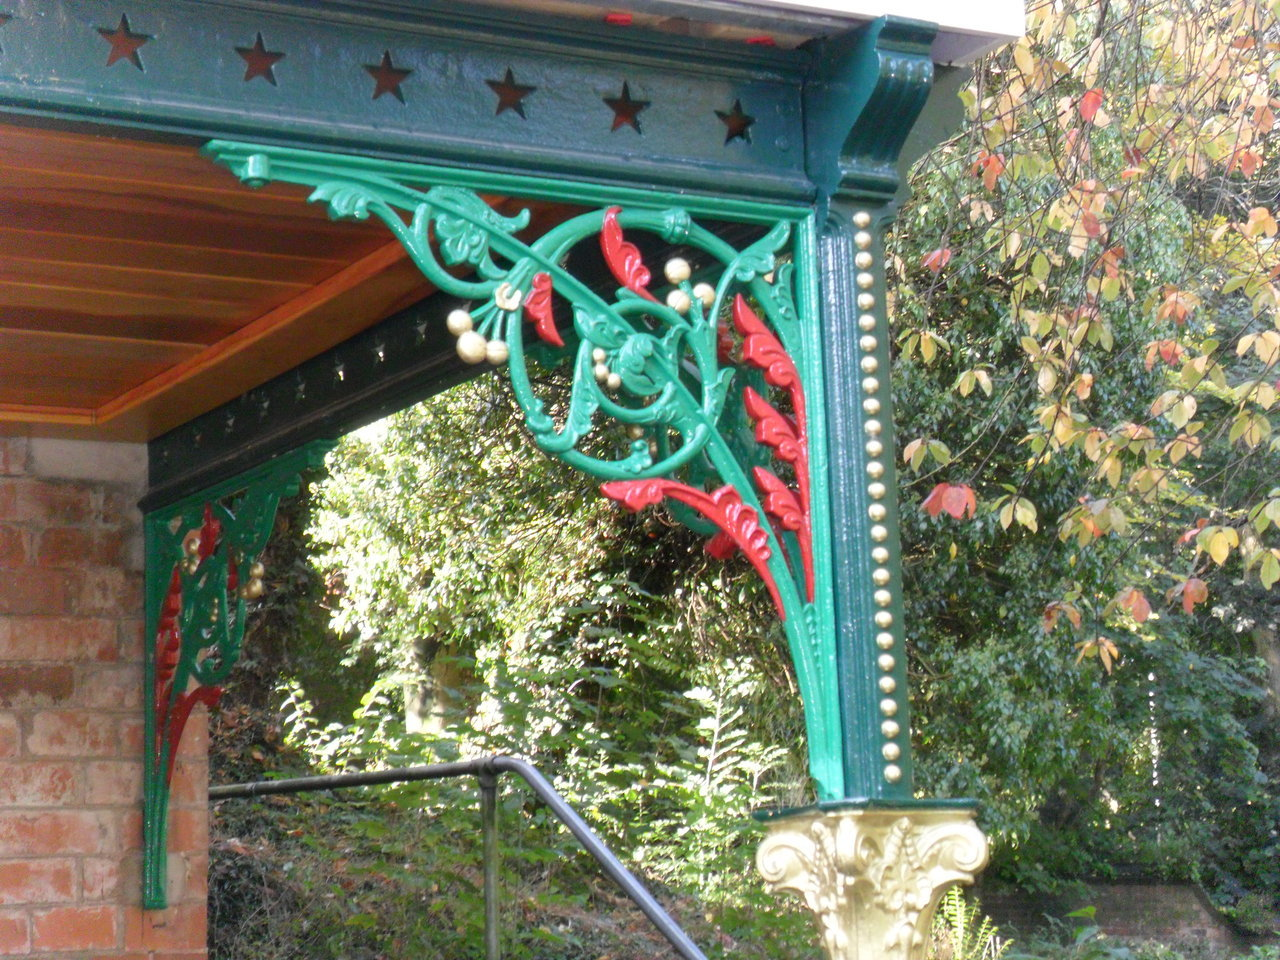 Victorian Ornamental Iron work on a restored Pavilion at Walsall Arboretum,Walsall,England